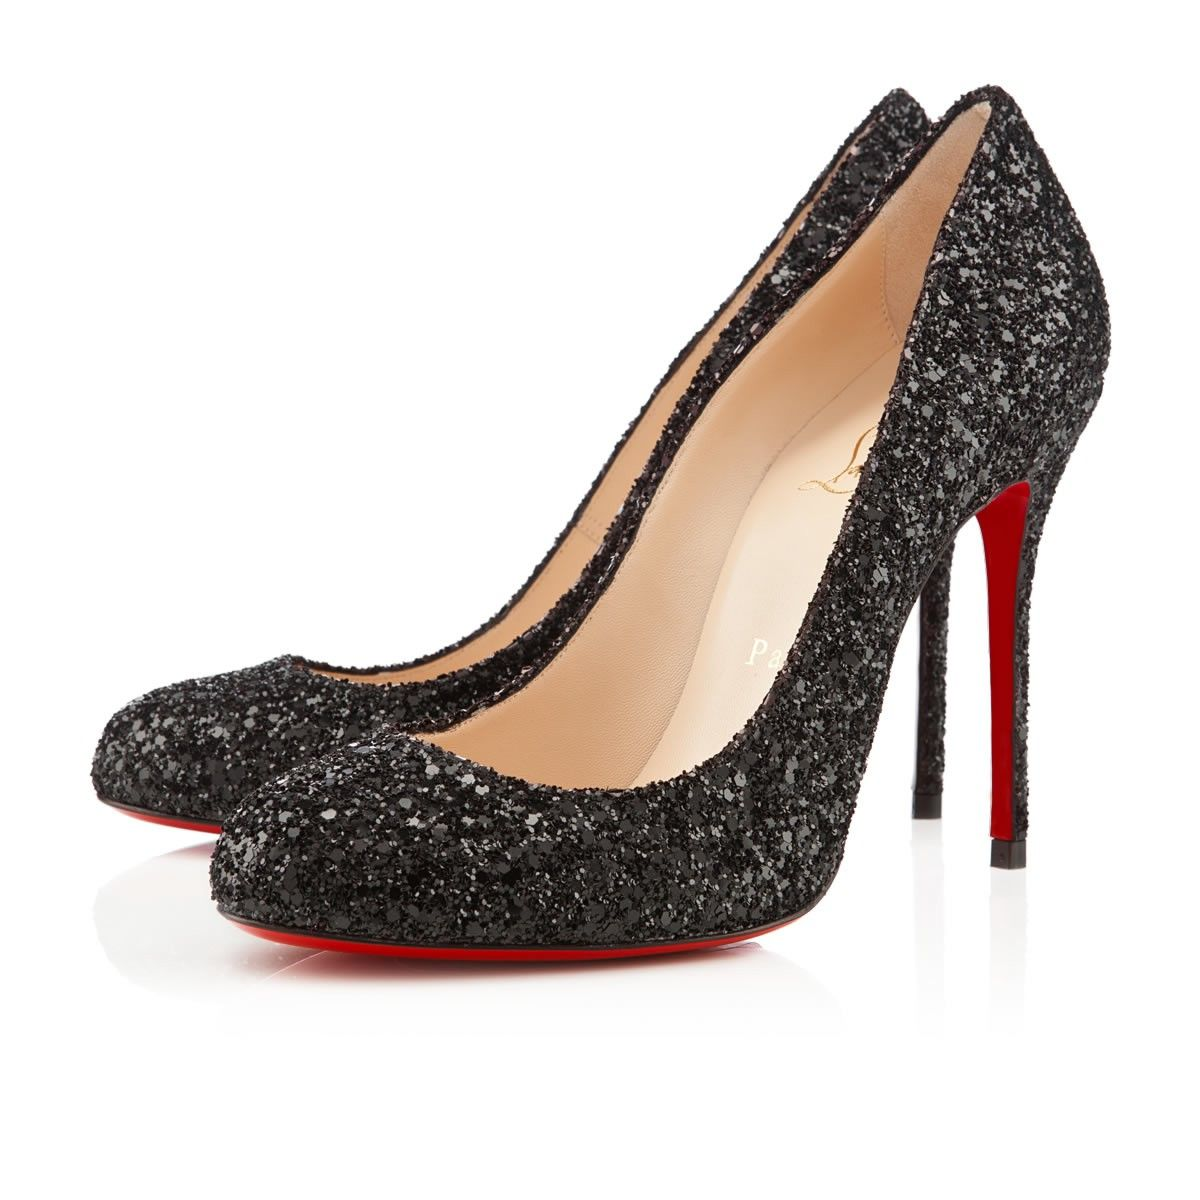 christian louboutin black glitter shoes